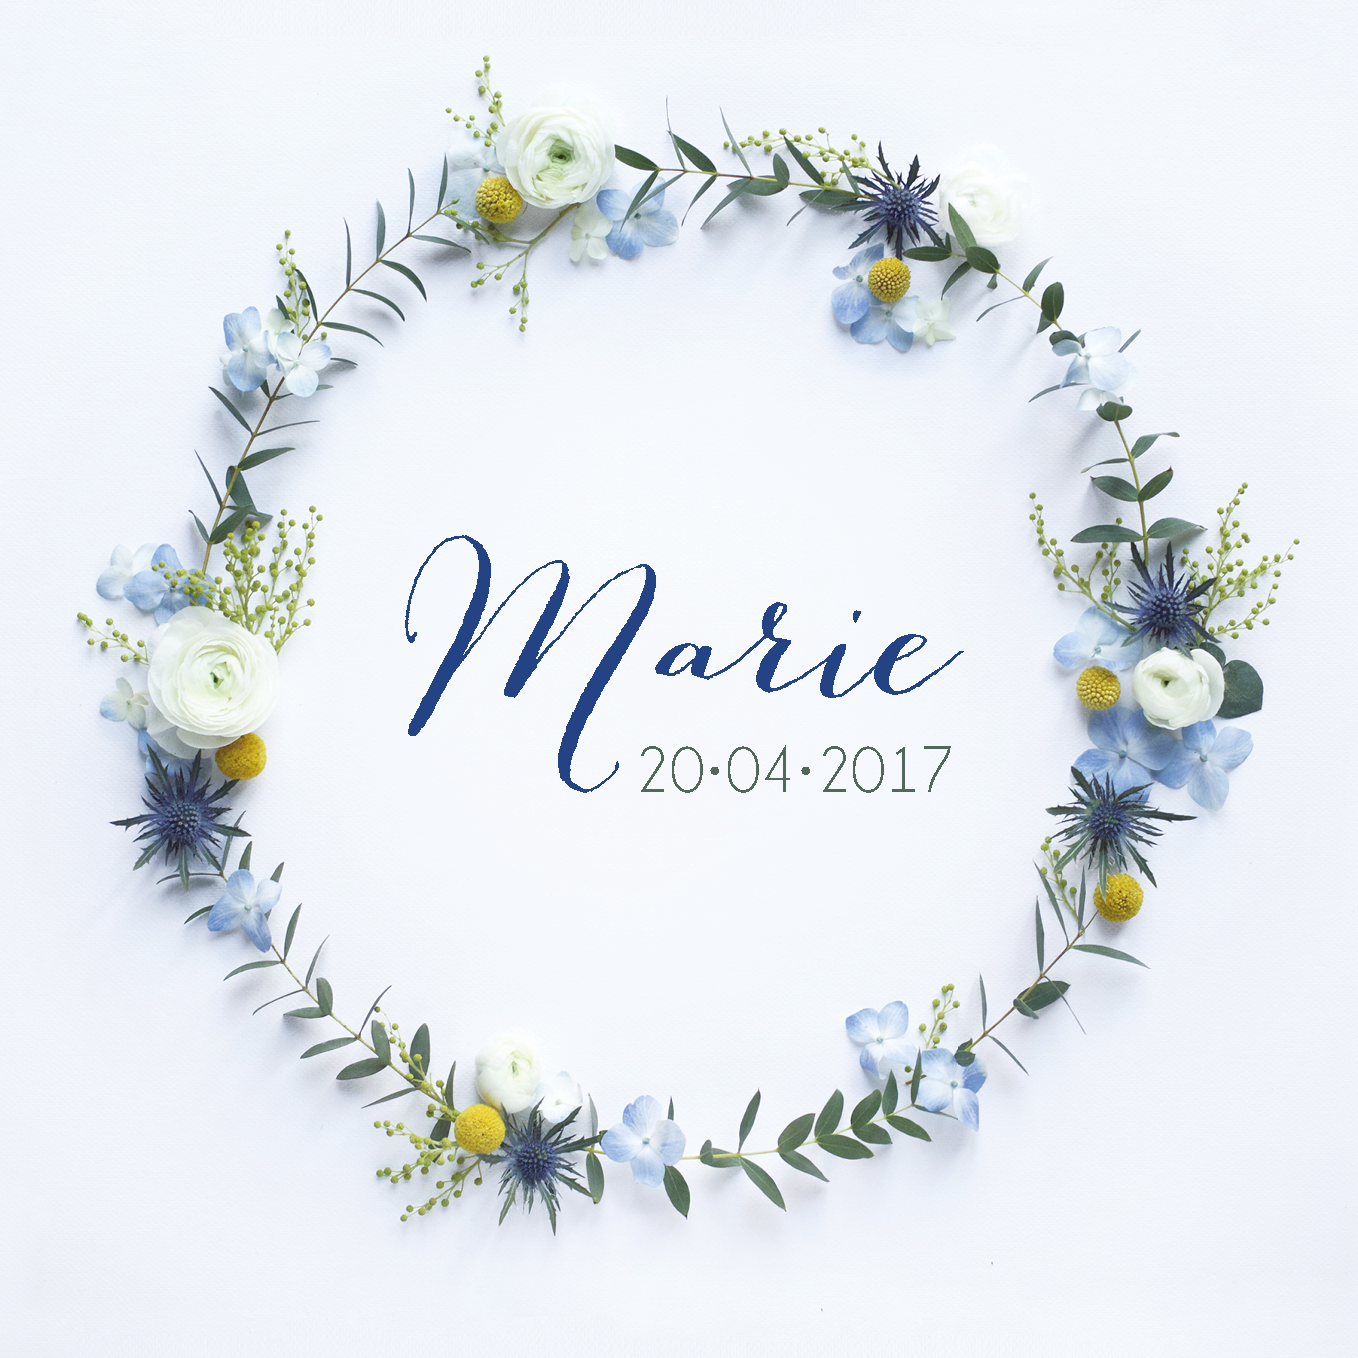 nouvelle collection naissance marie 13,5-13,5 couronne 20179.jpg